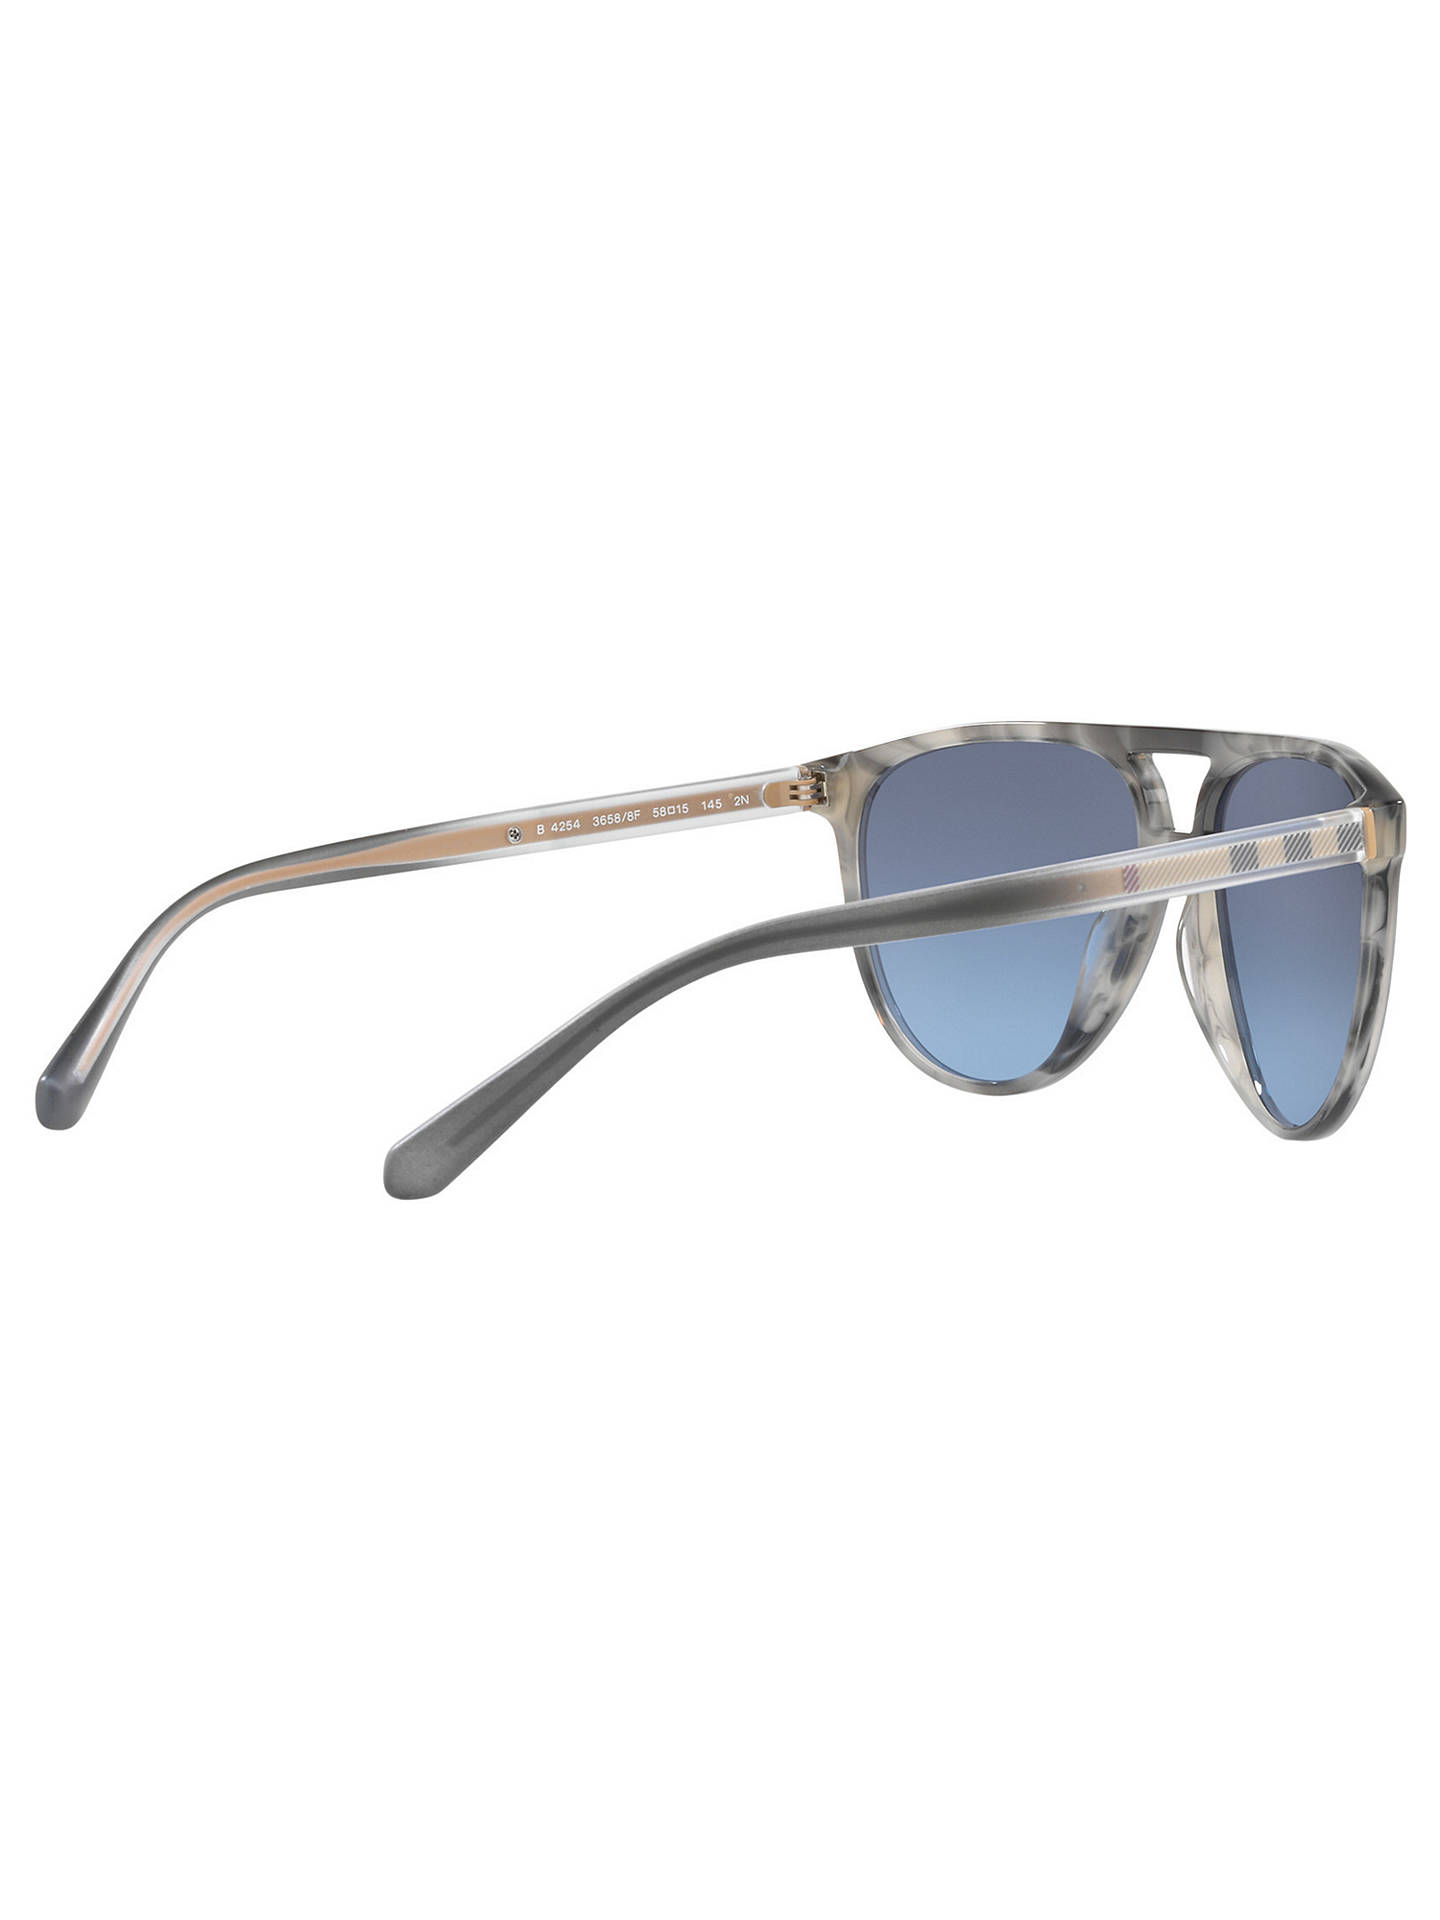 BuyBurberry BE4254 Aviator Sunglasses, Grey/Blue Online at johnlewis.com